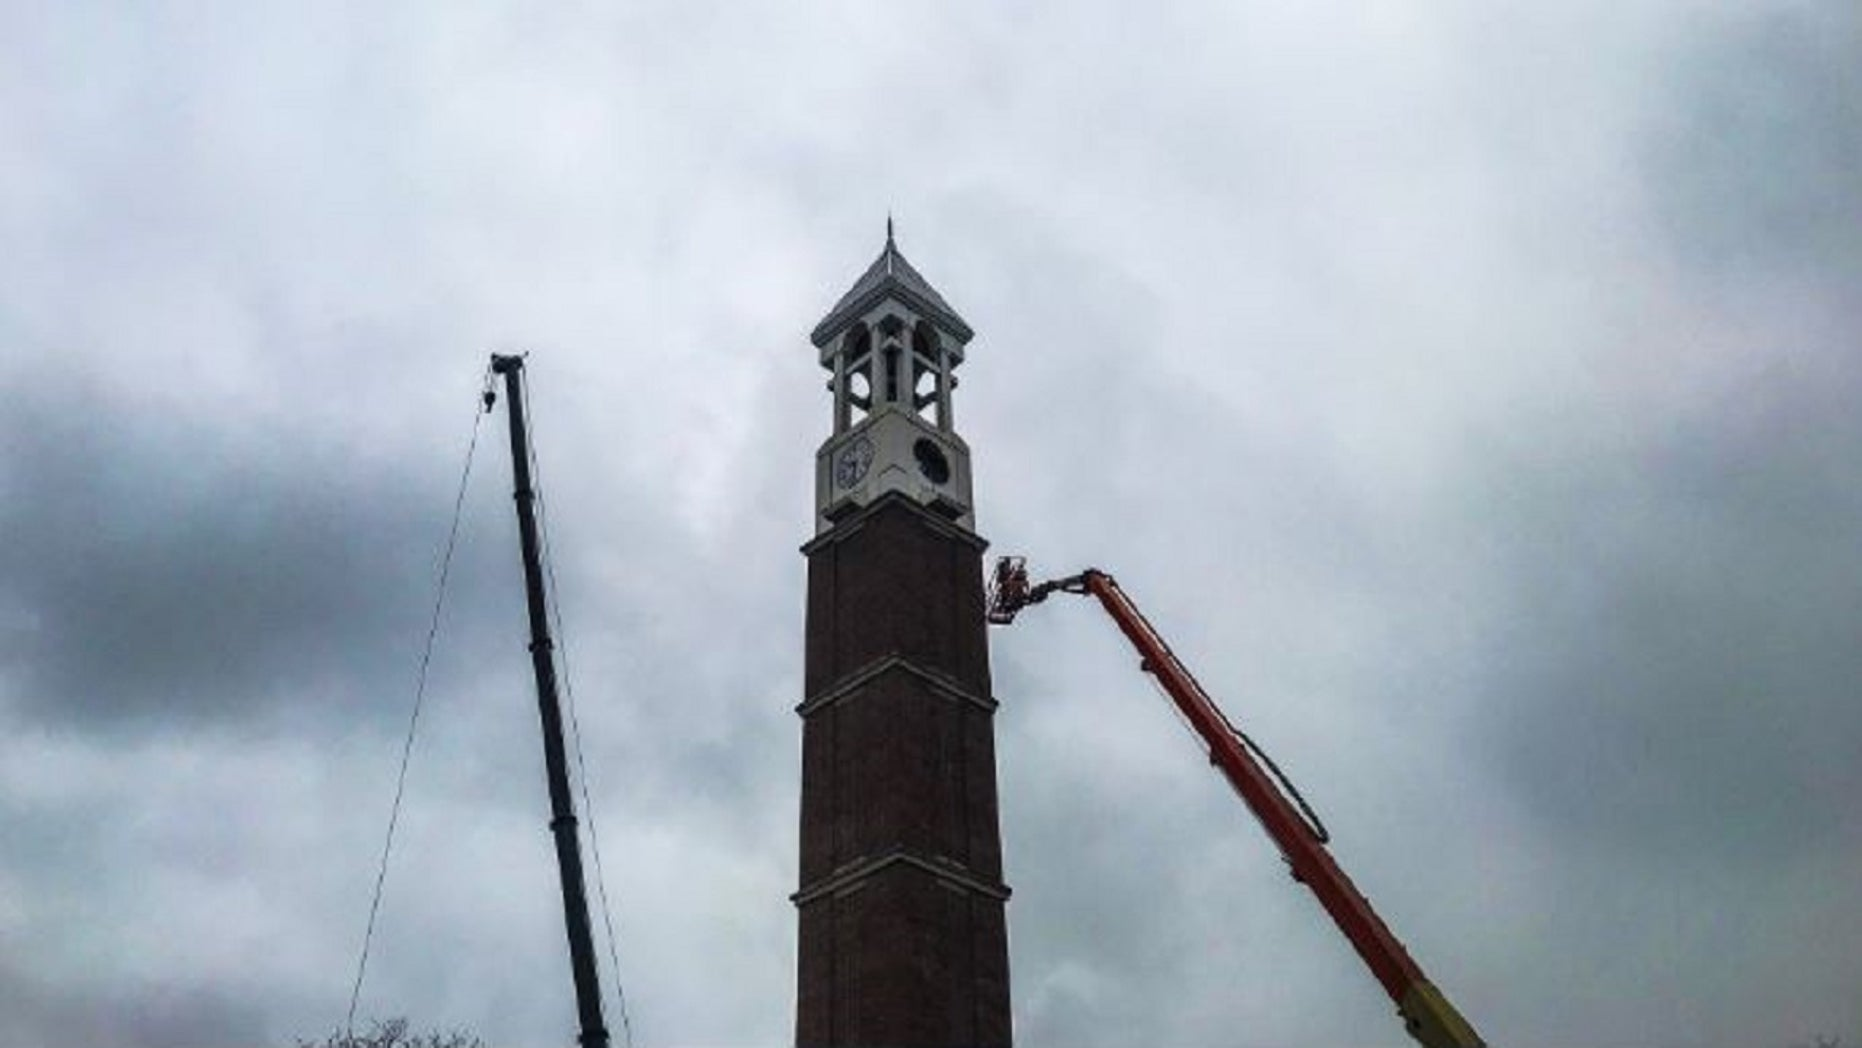 A clock on the Purdue University Bell Tower fell to the ground Tuesday. Fortunately, no injuries were reported.